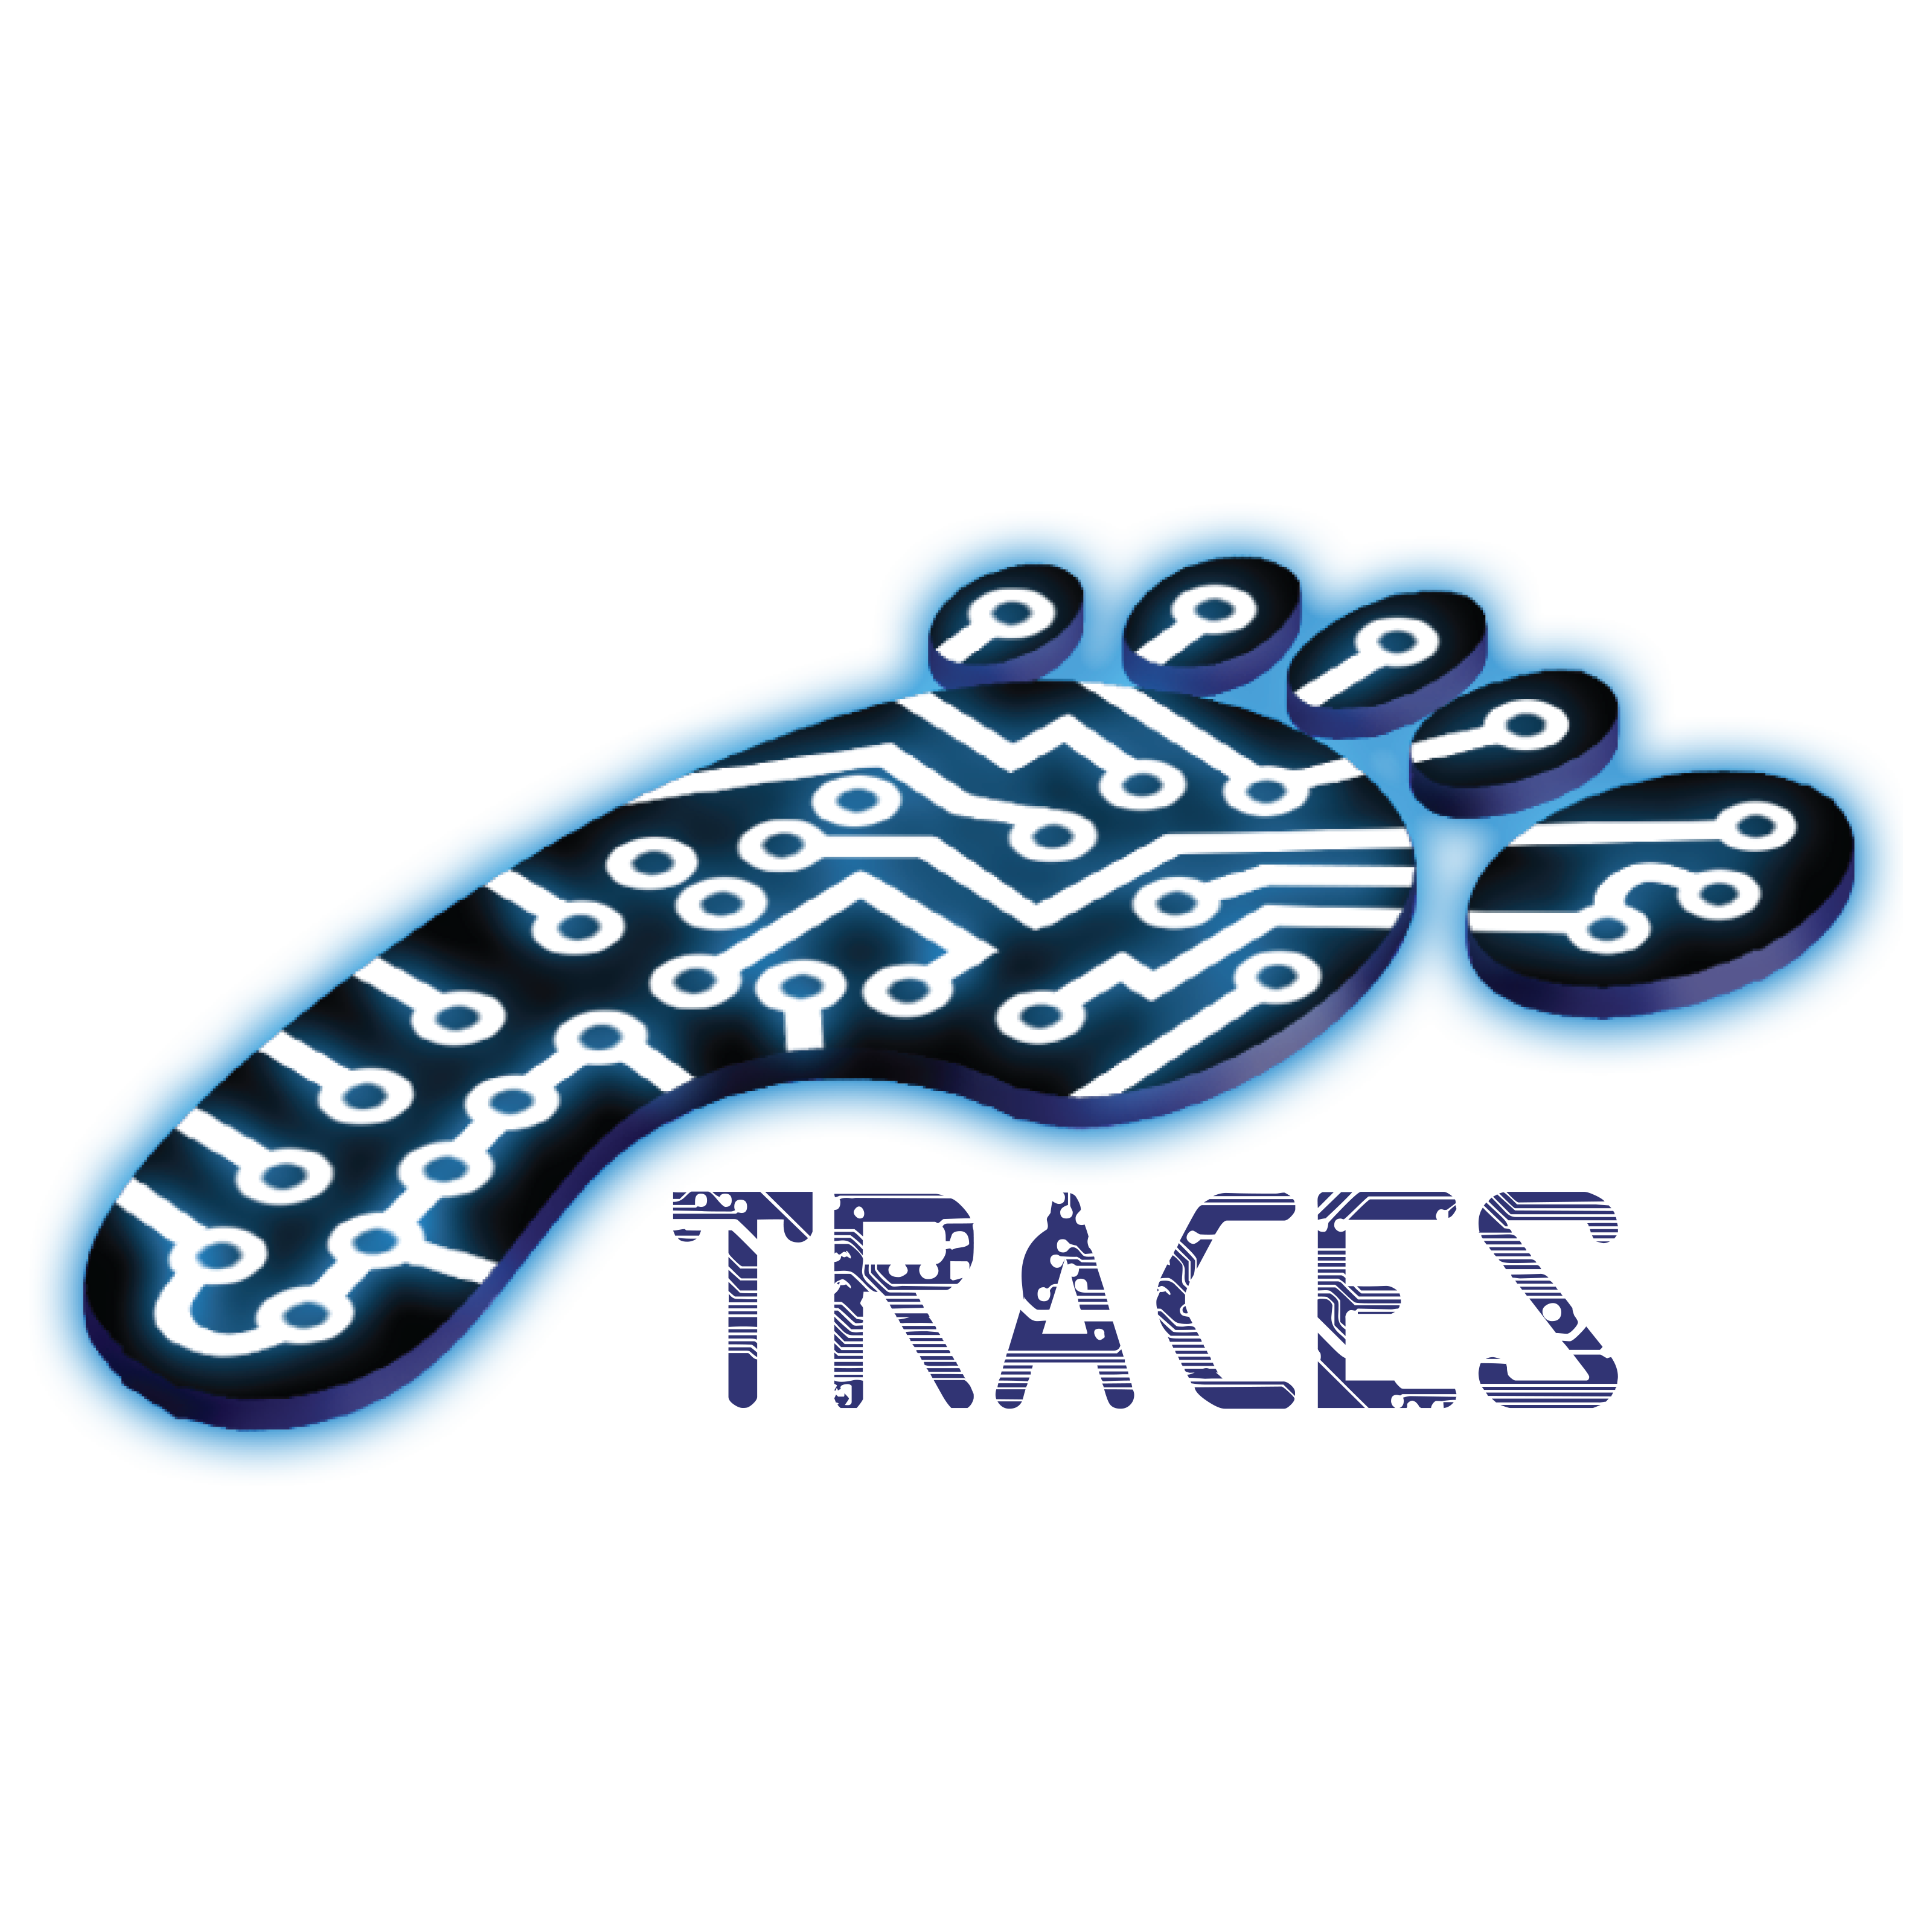 TRACES - SUPPORTING YOUTH TO MANAGE THEIR DIGITAL & SOCIAL MEDIA PRESENCE